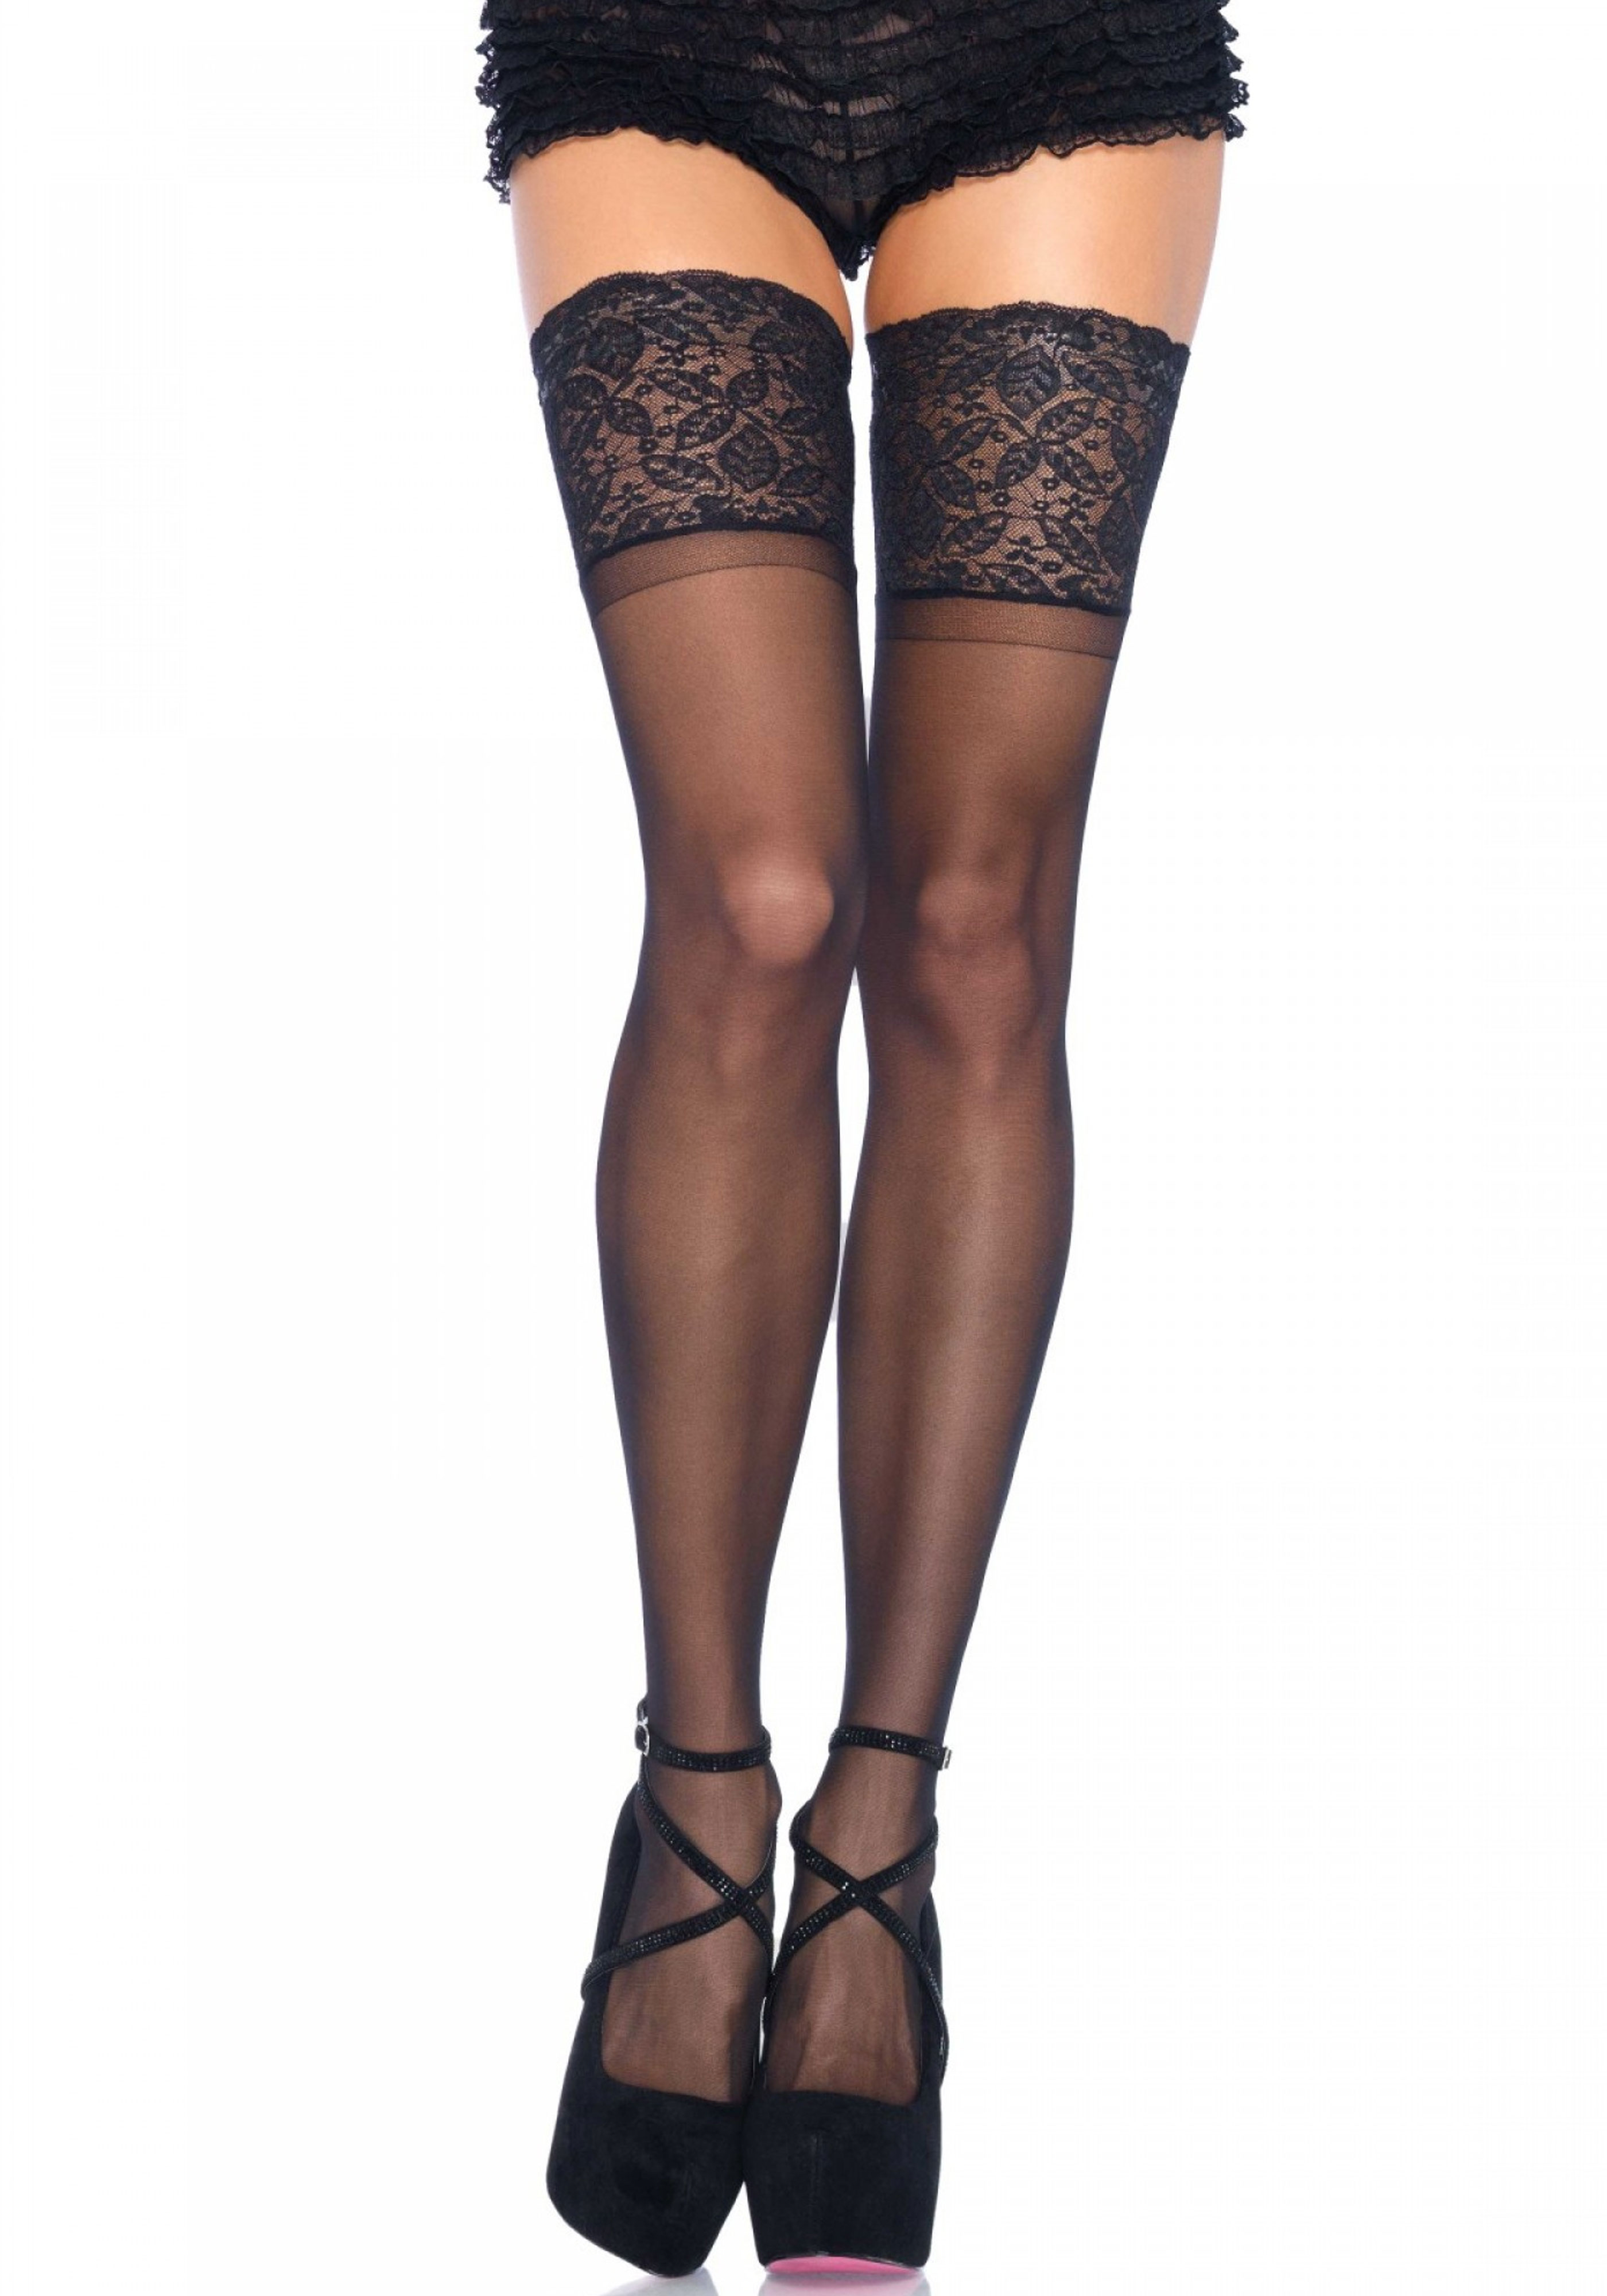 Plus Size Stay Up Sheer